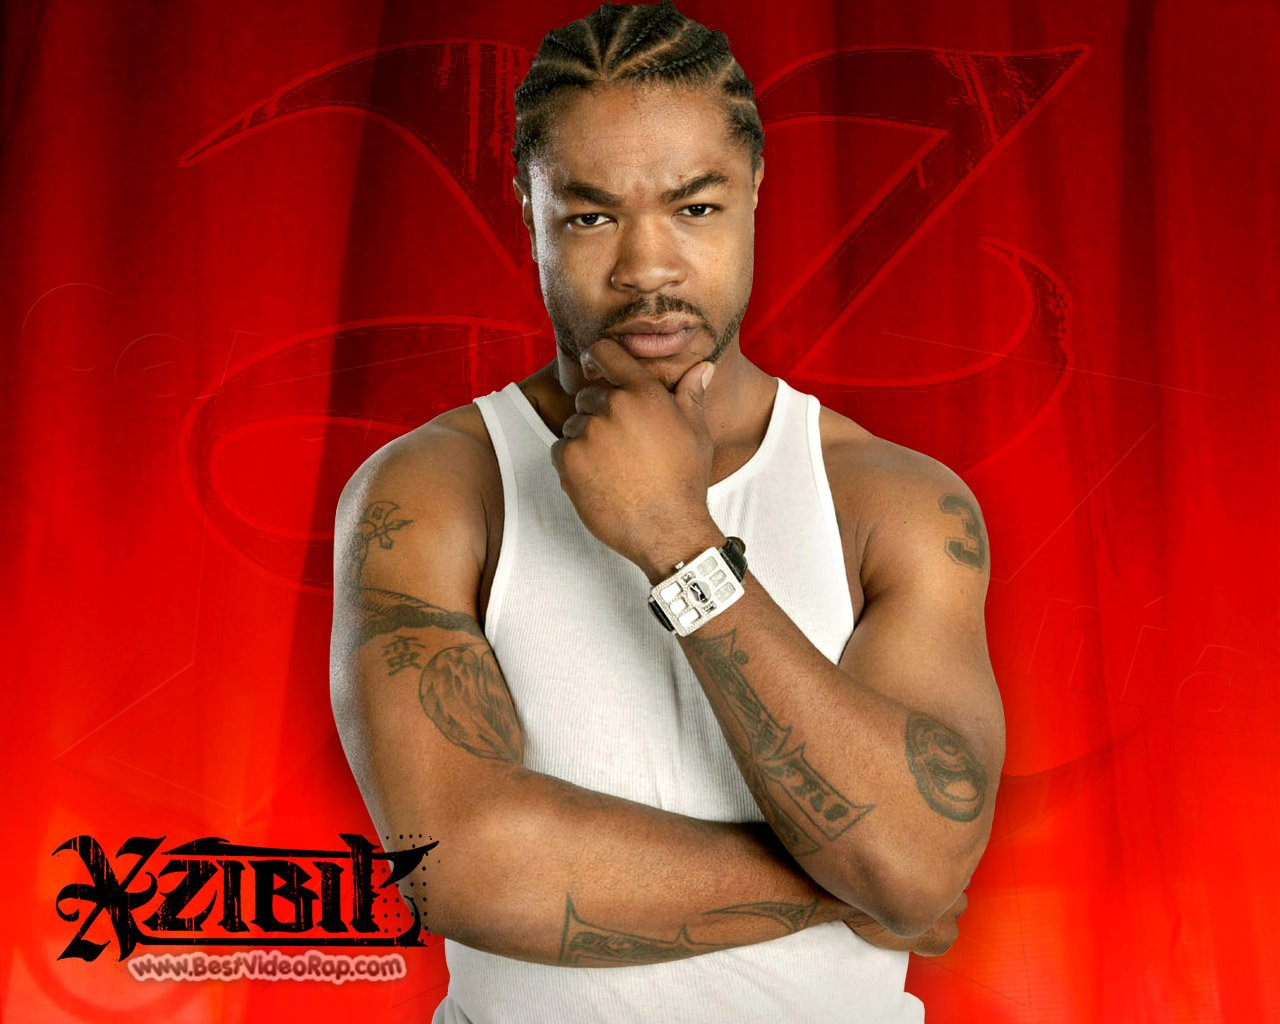 MP3 CONCENTRATE TÉLÉCHARGER XZIBIT